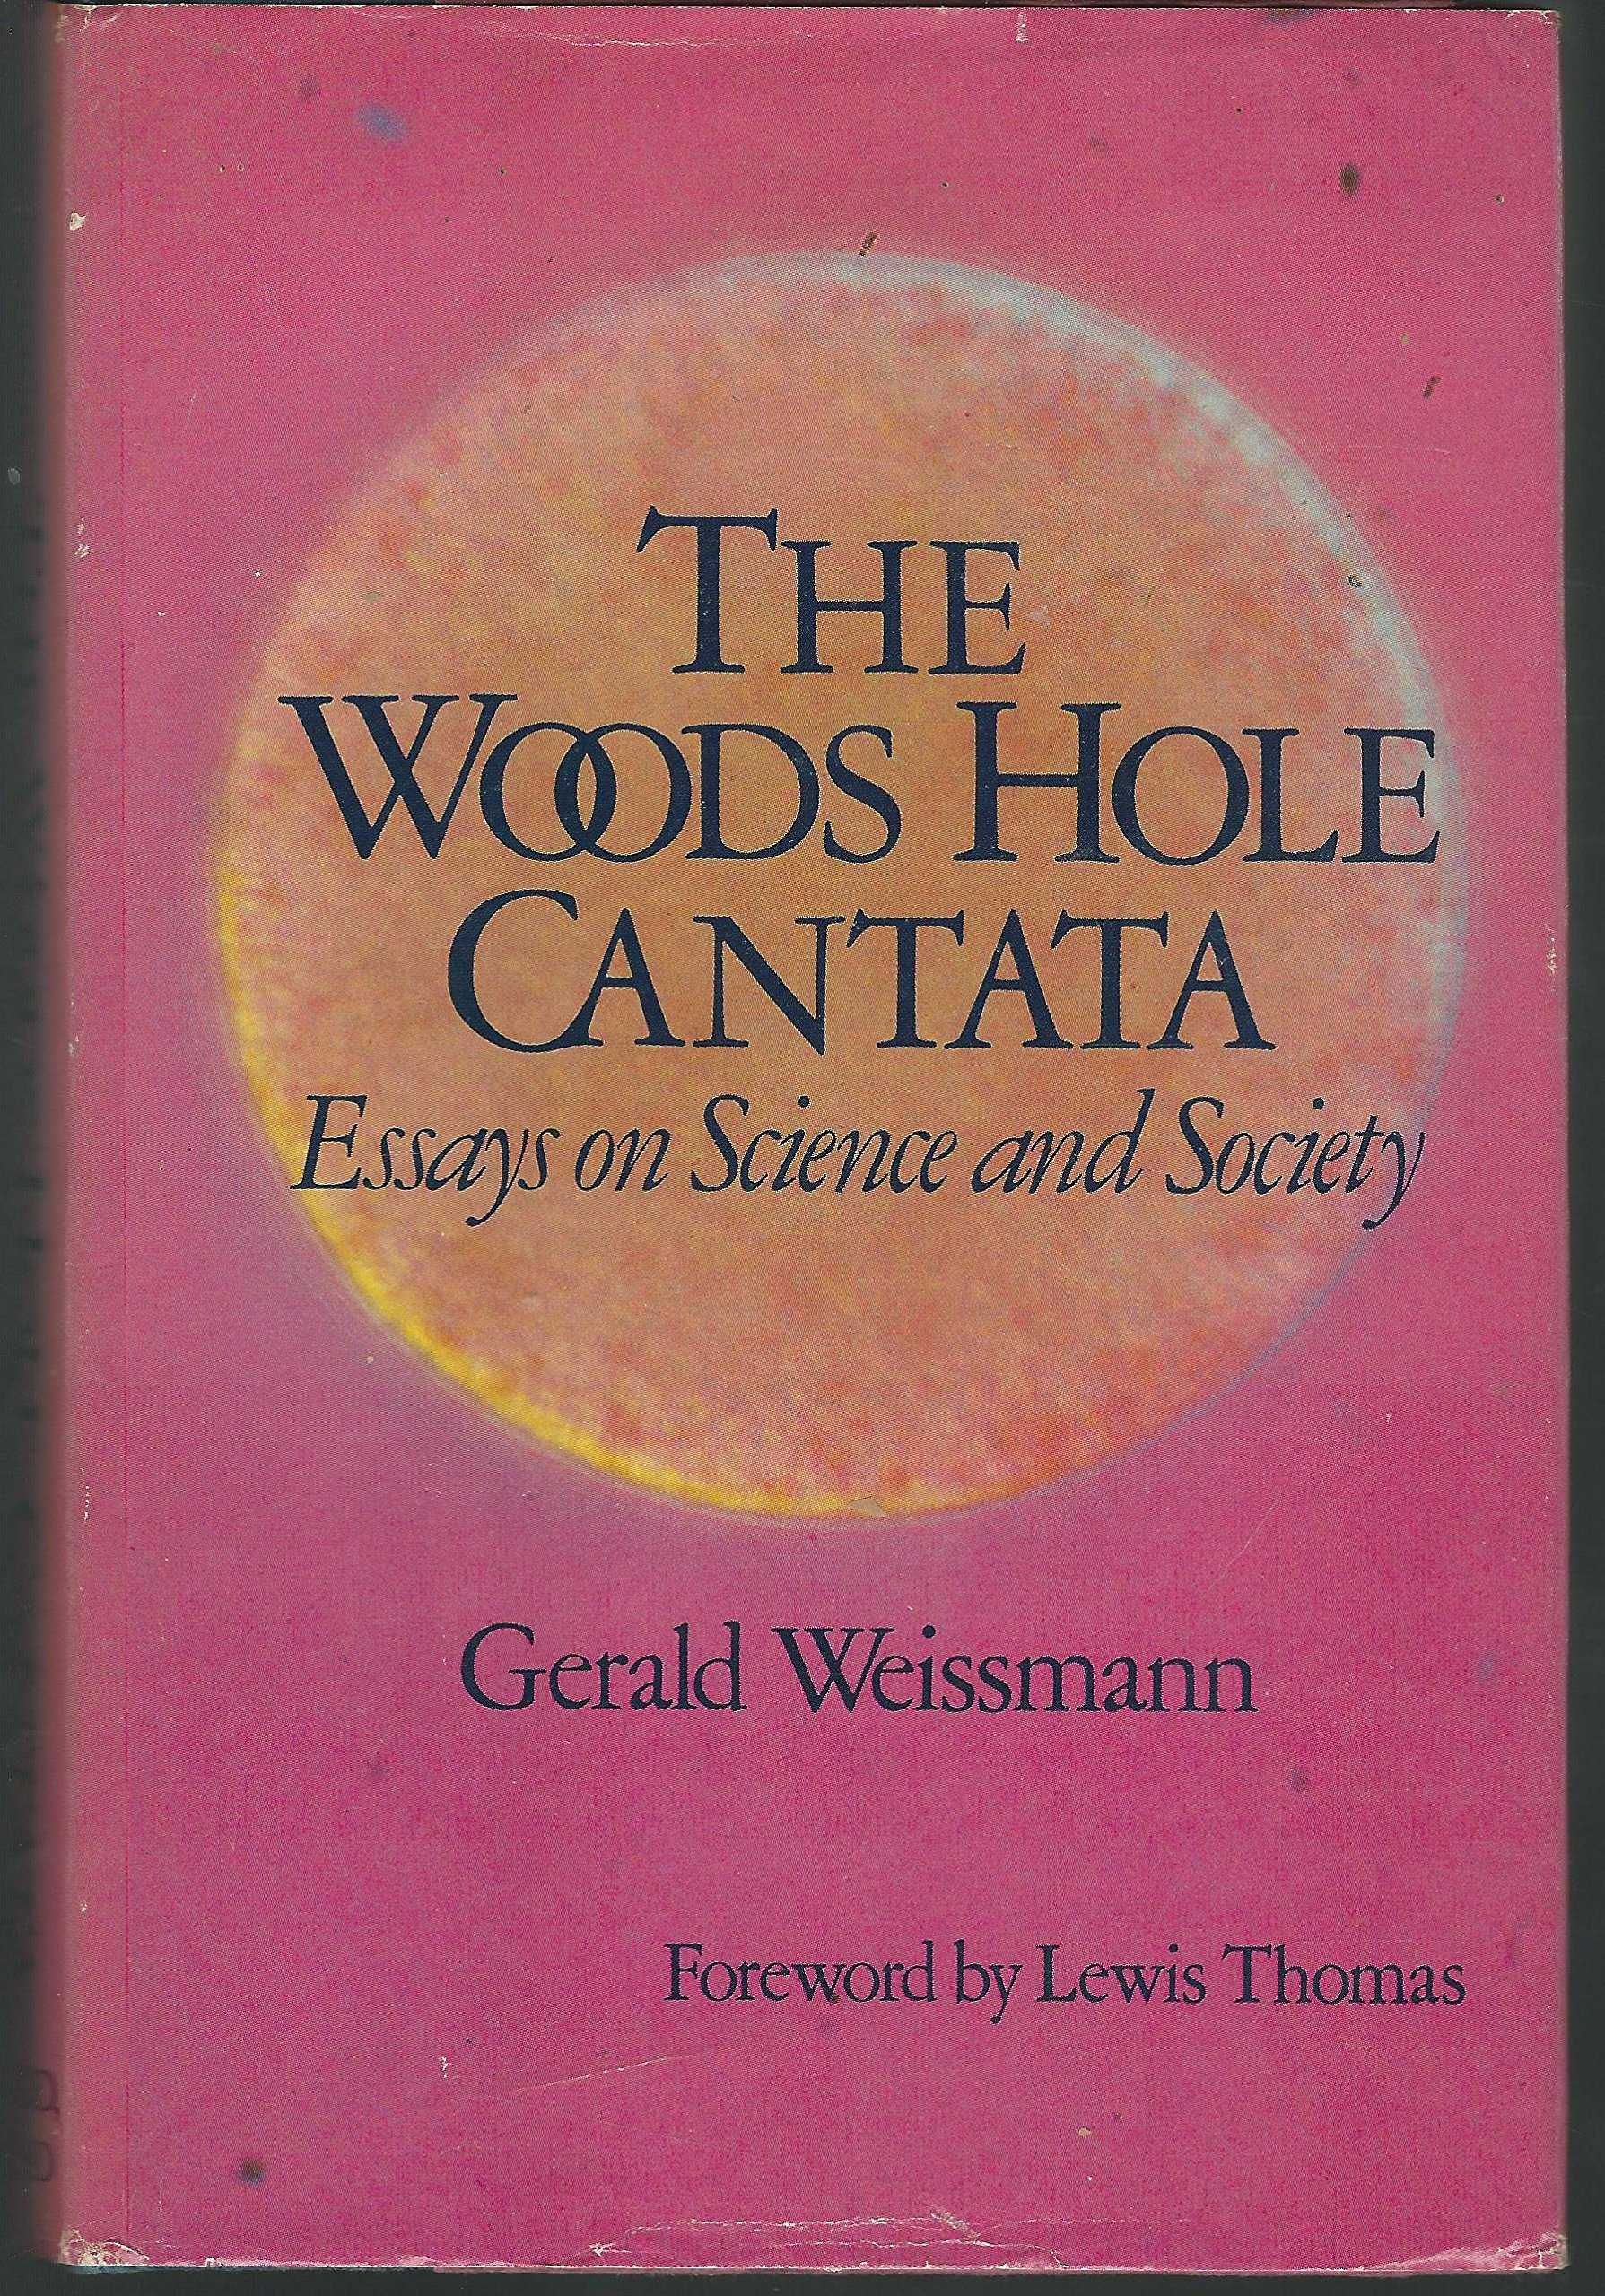 The Woods Hole Cantata Essays On Science And Society Gerald  The Woods Hole Cantata Essays On Science And Society Paperback  February    Desk Top Organizer also Woodworking Project Plan Woodworking Projects